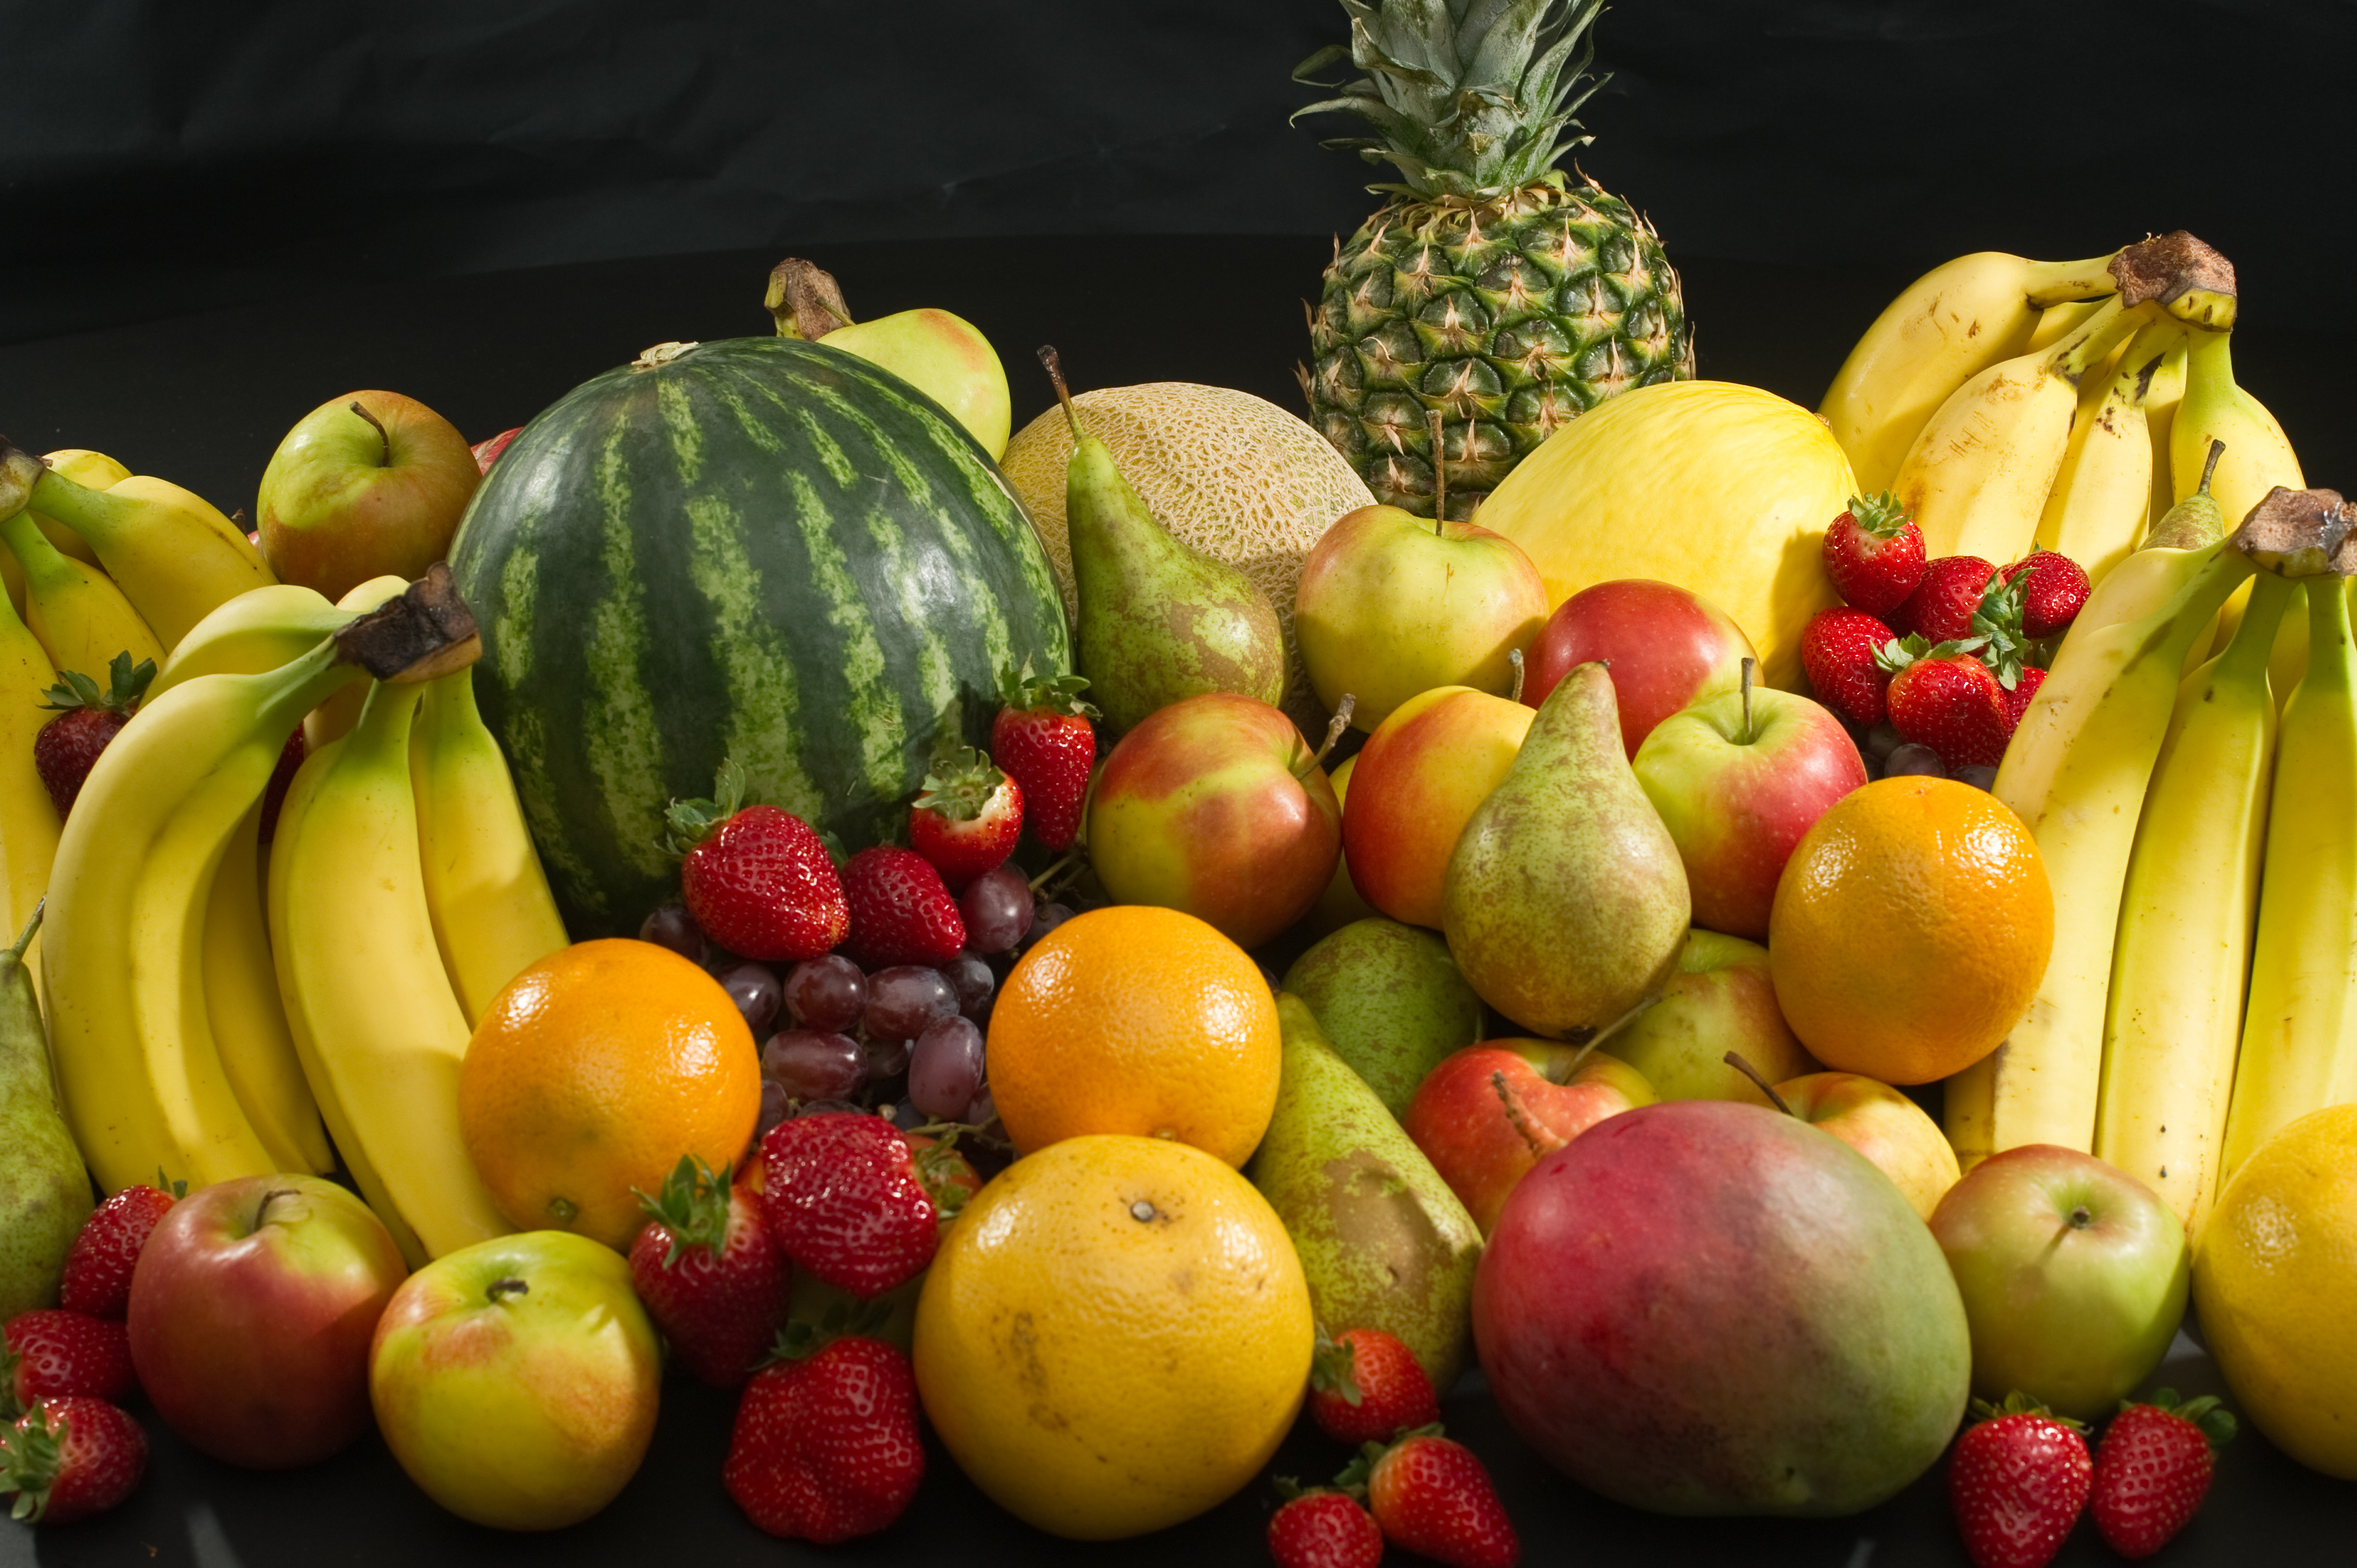 healthy diet common colorful culinary fruits apples pears strawberries oranges bananas grapes canary melons watermelon cantaloupe pineapple and mango